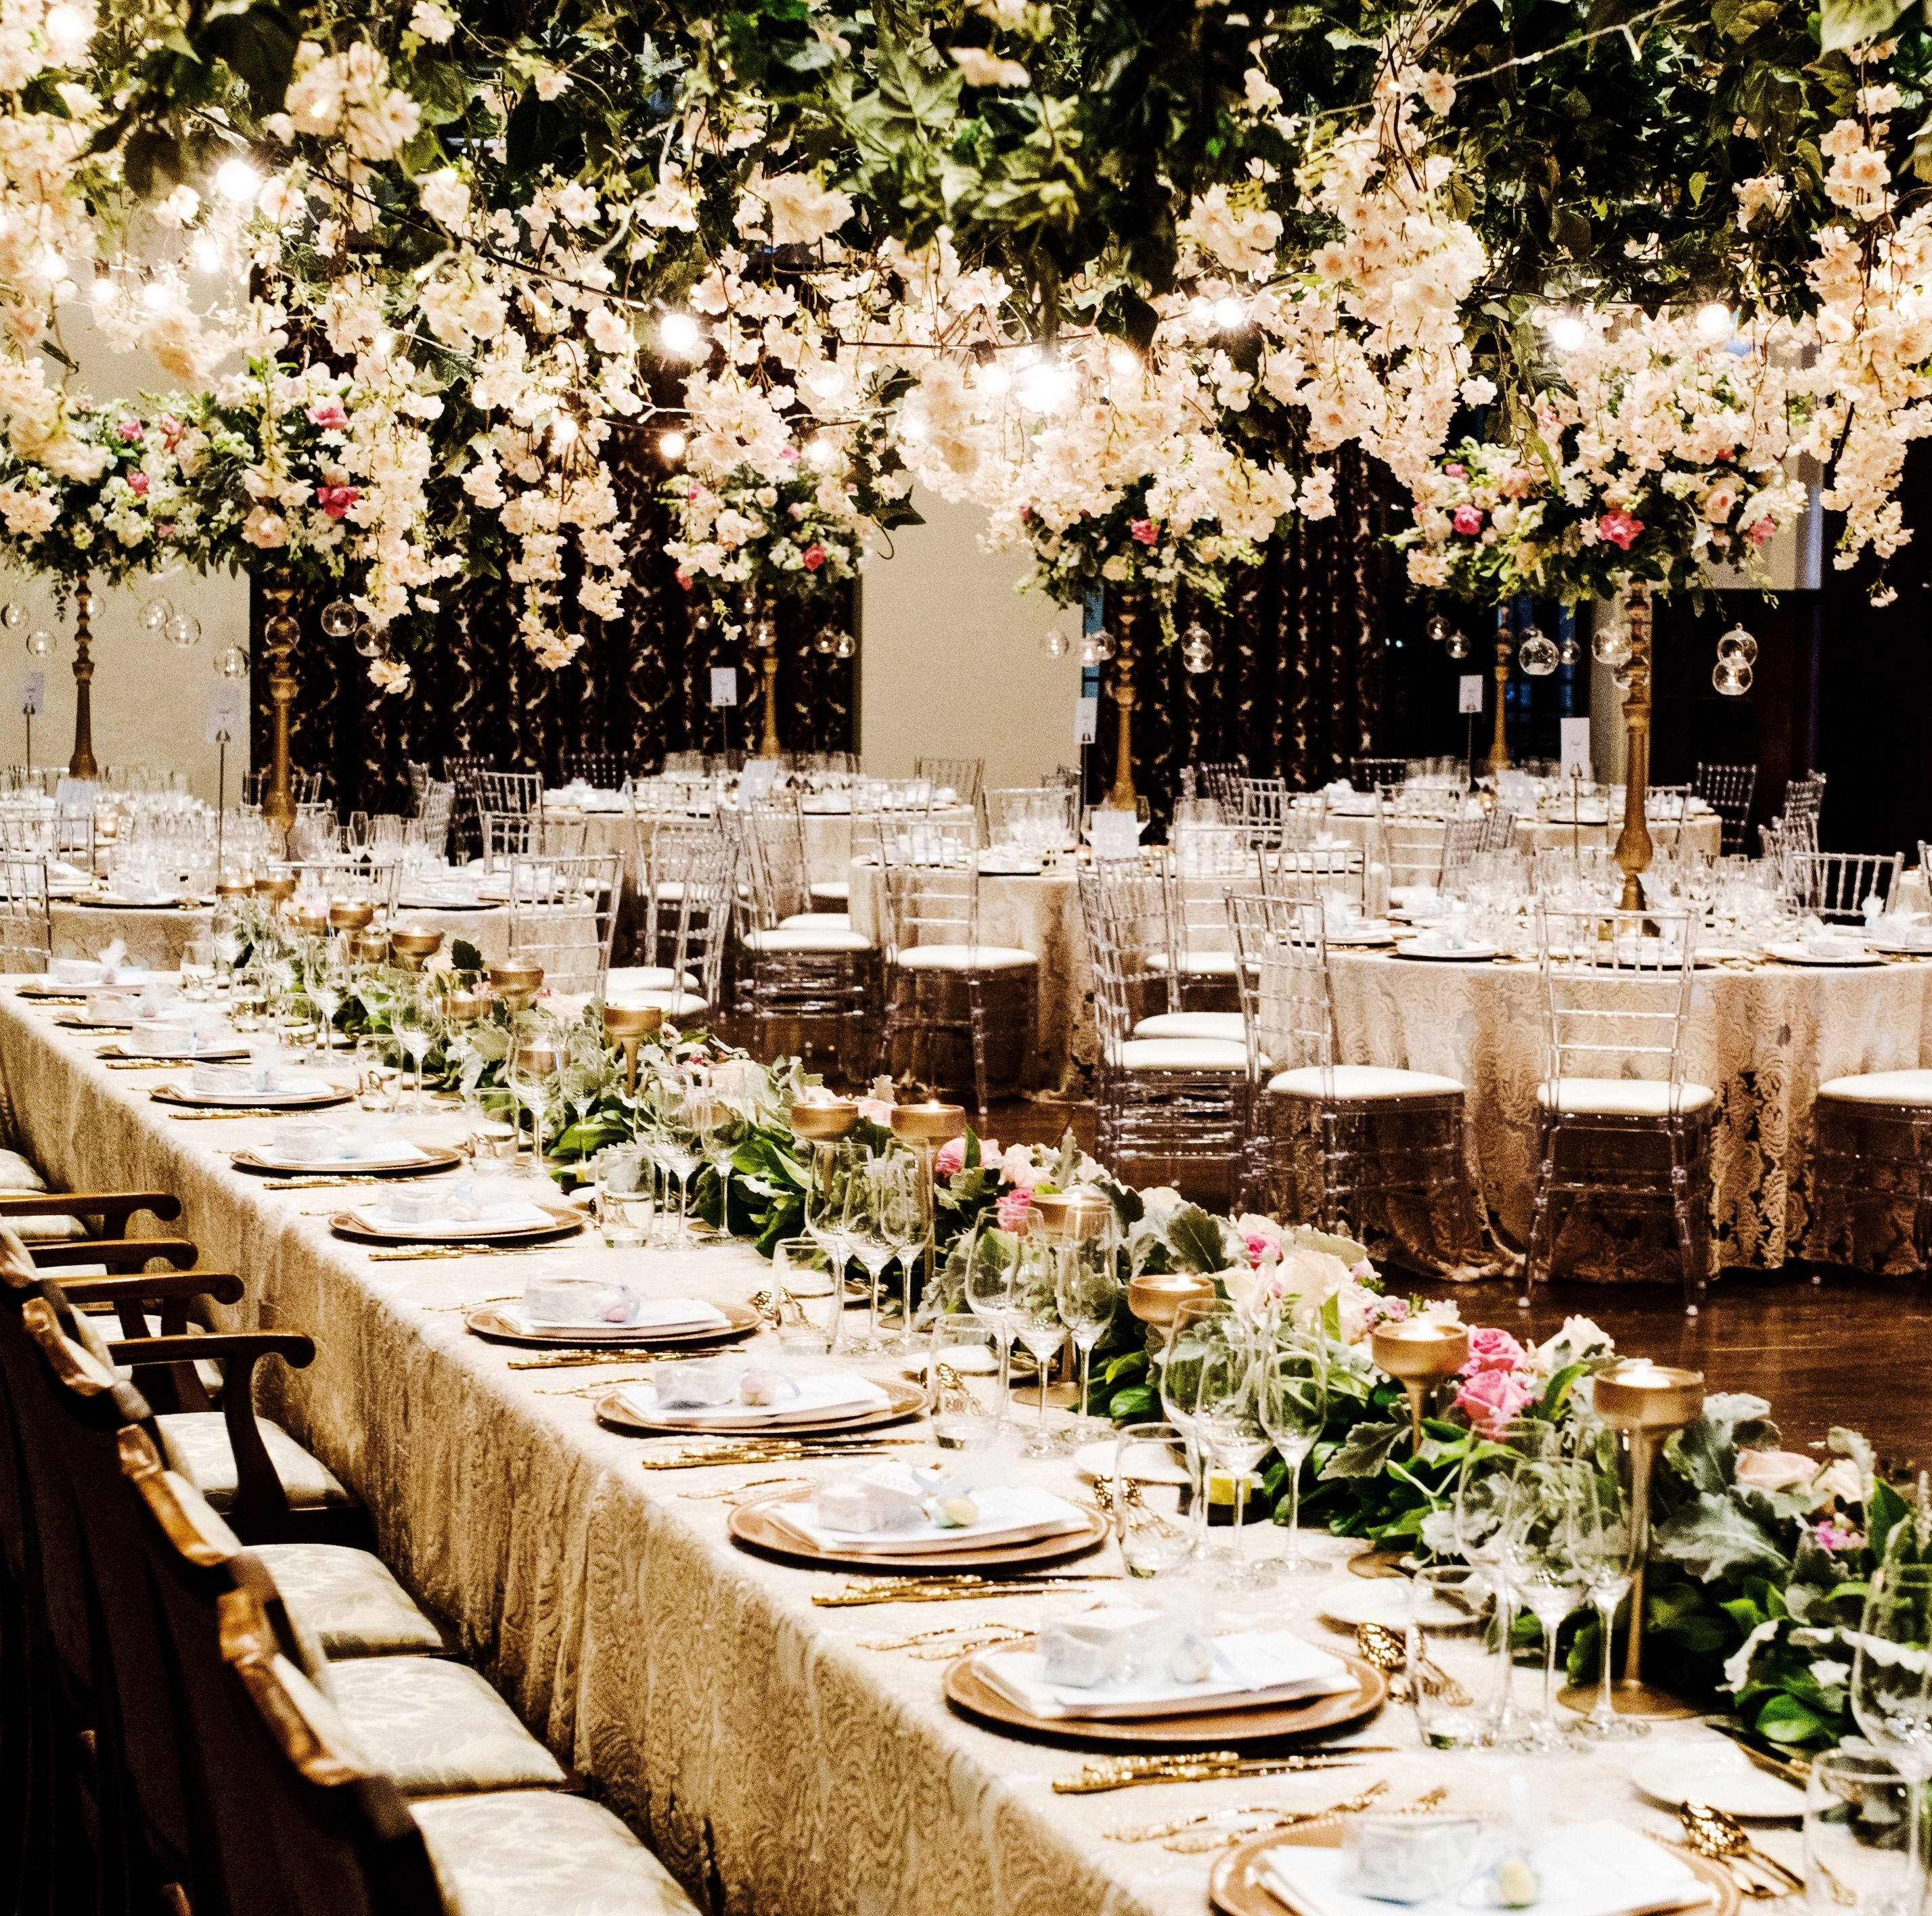 Beautiful Flowers For Weddings: Beautiful Wedding Reception Styling Inspiration In The